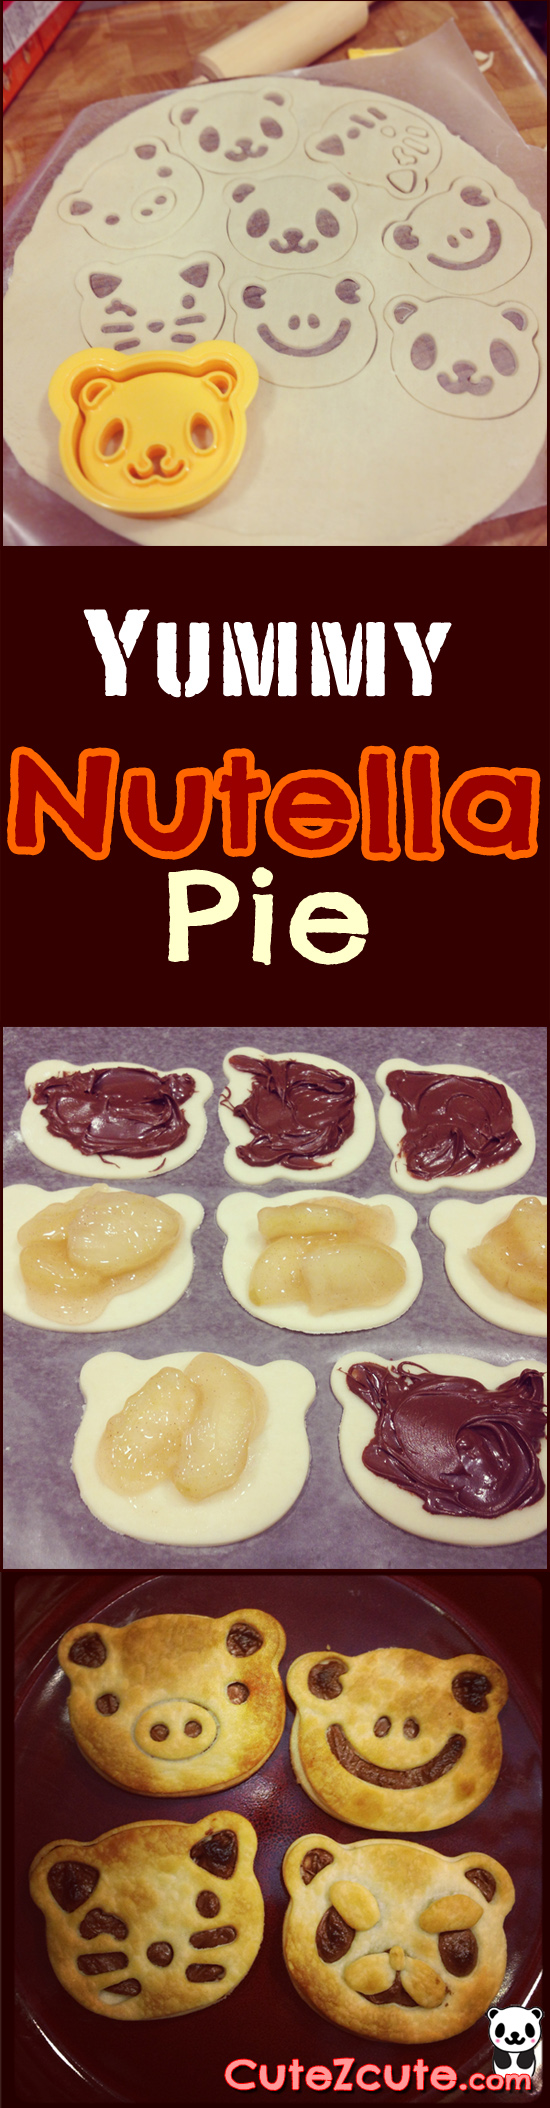 Yummy Nutella Pie #CuteZcute